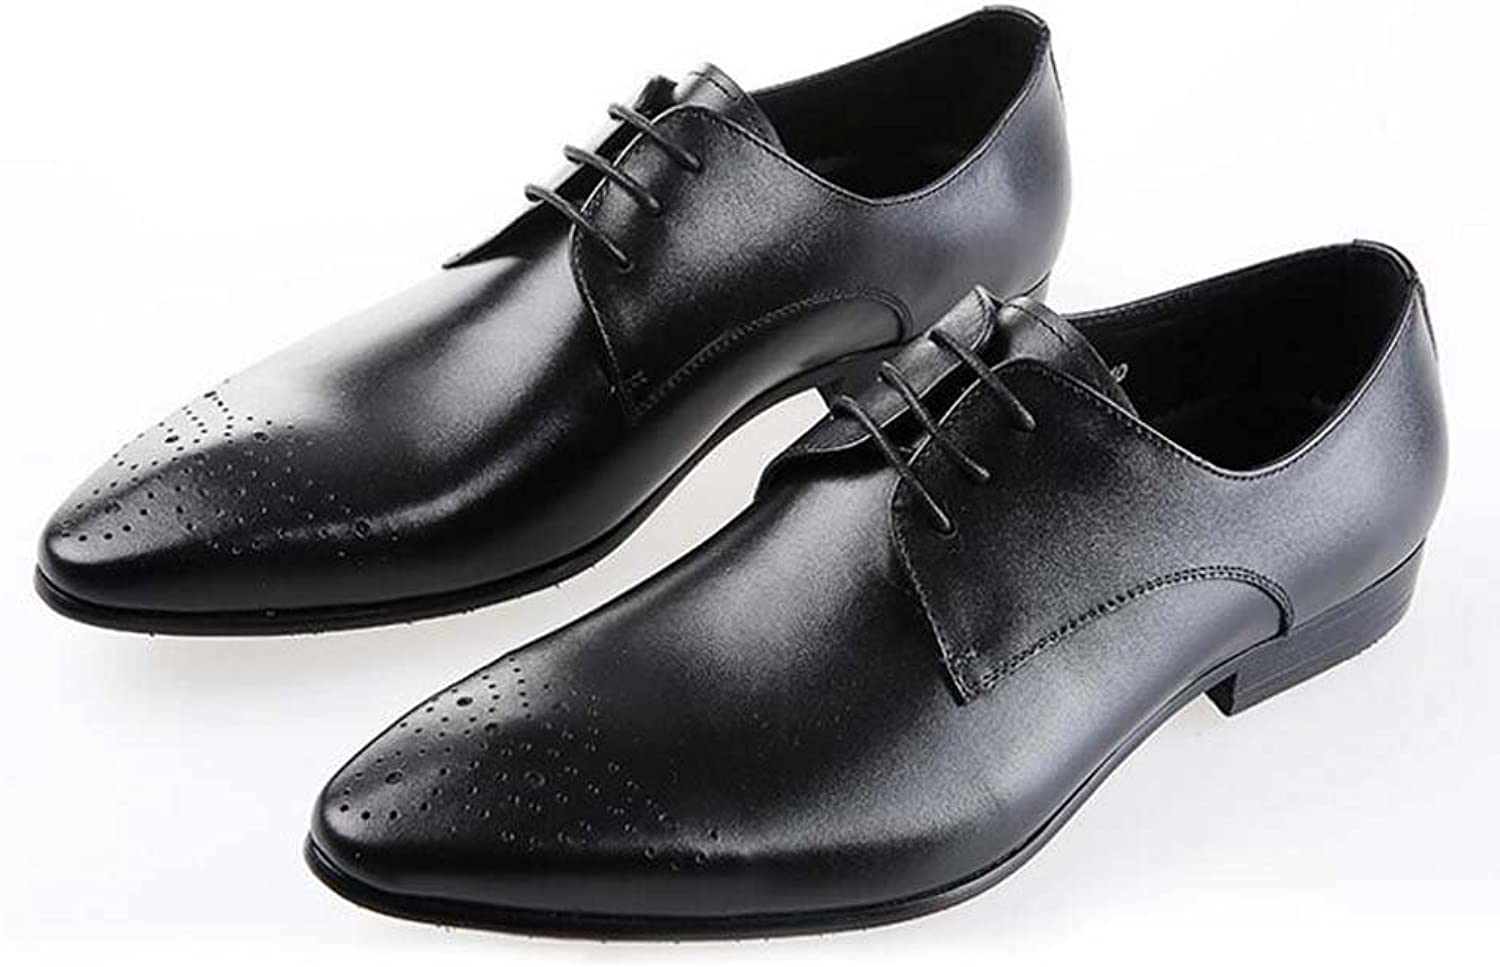 Men's Wedding shoes Europe and The United States Version of The Dress Work Wear Stylish Atmospheric shoes Small Code 37